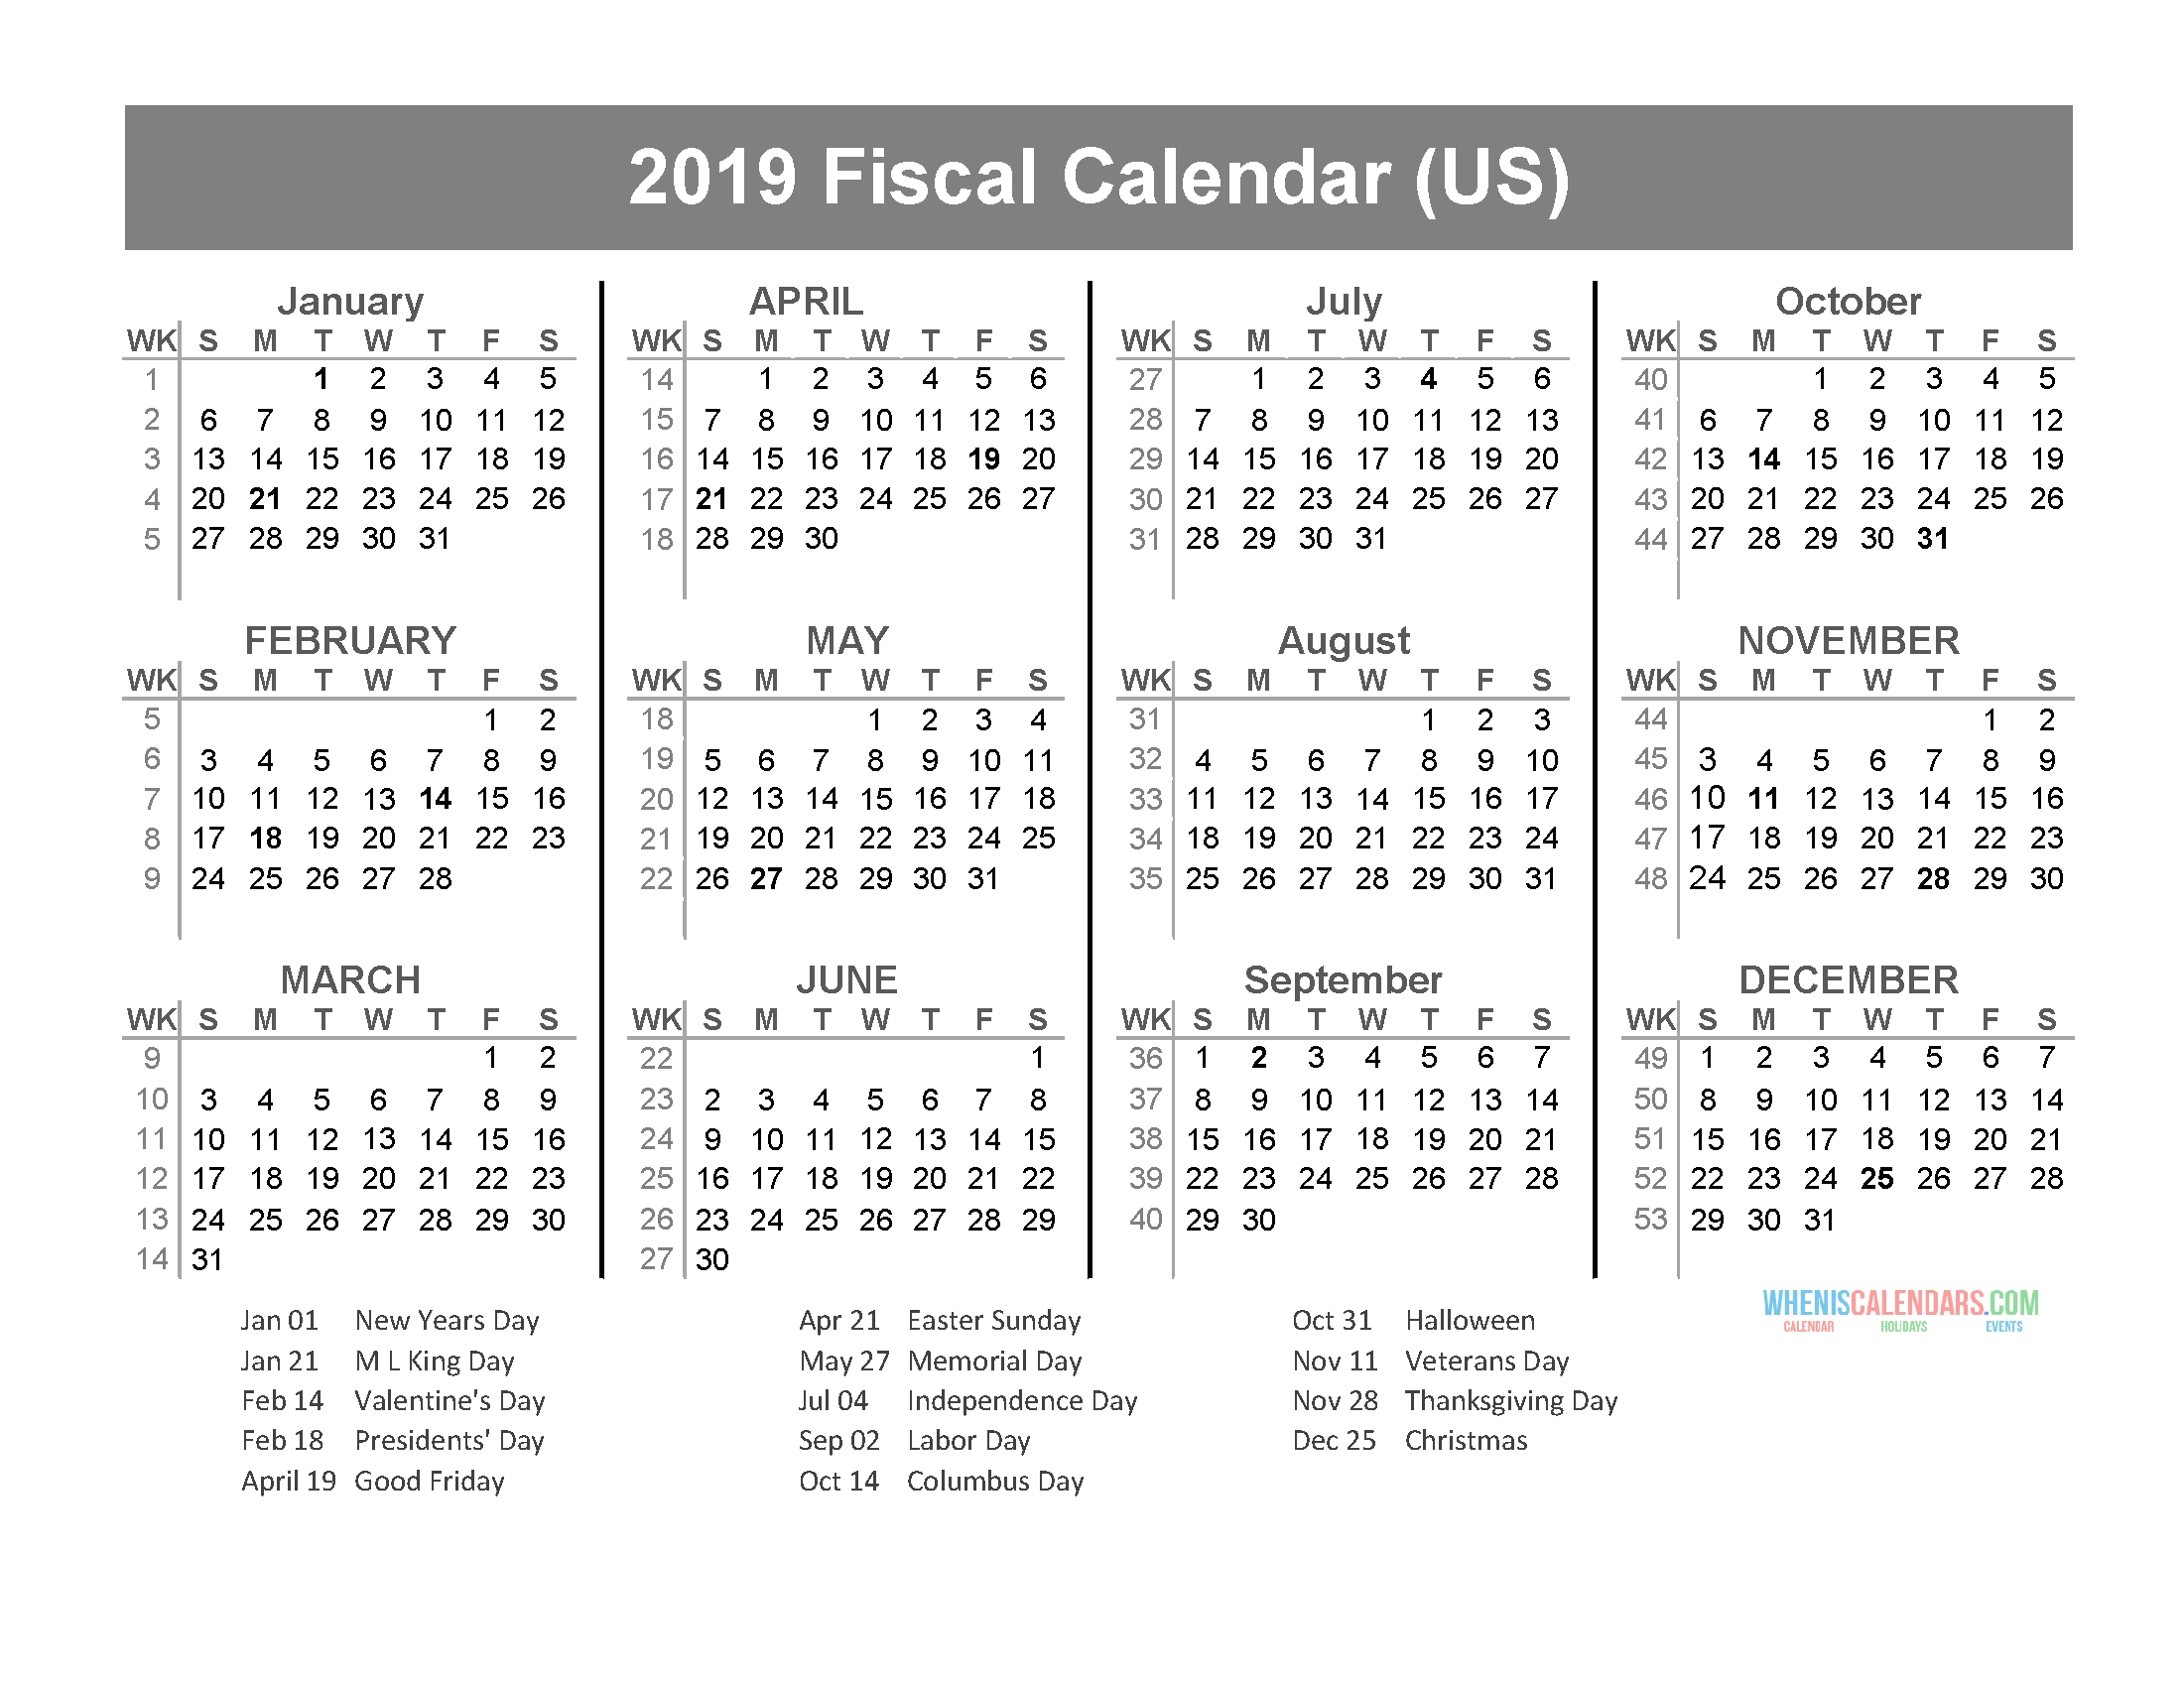 Fiscal Year 2019 Calendar With Us Holidays (January To intended for 2019 Fiscal Calendar 4 4 5